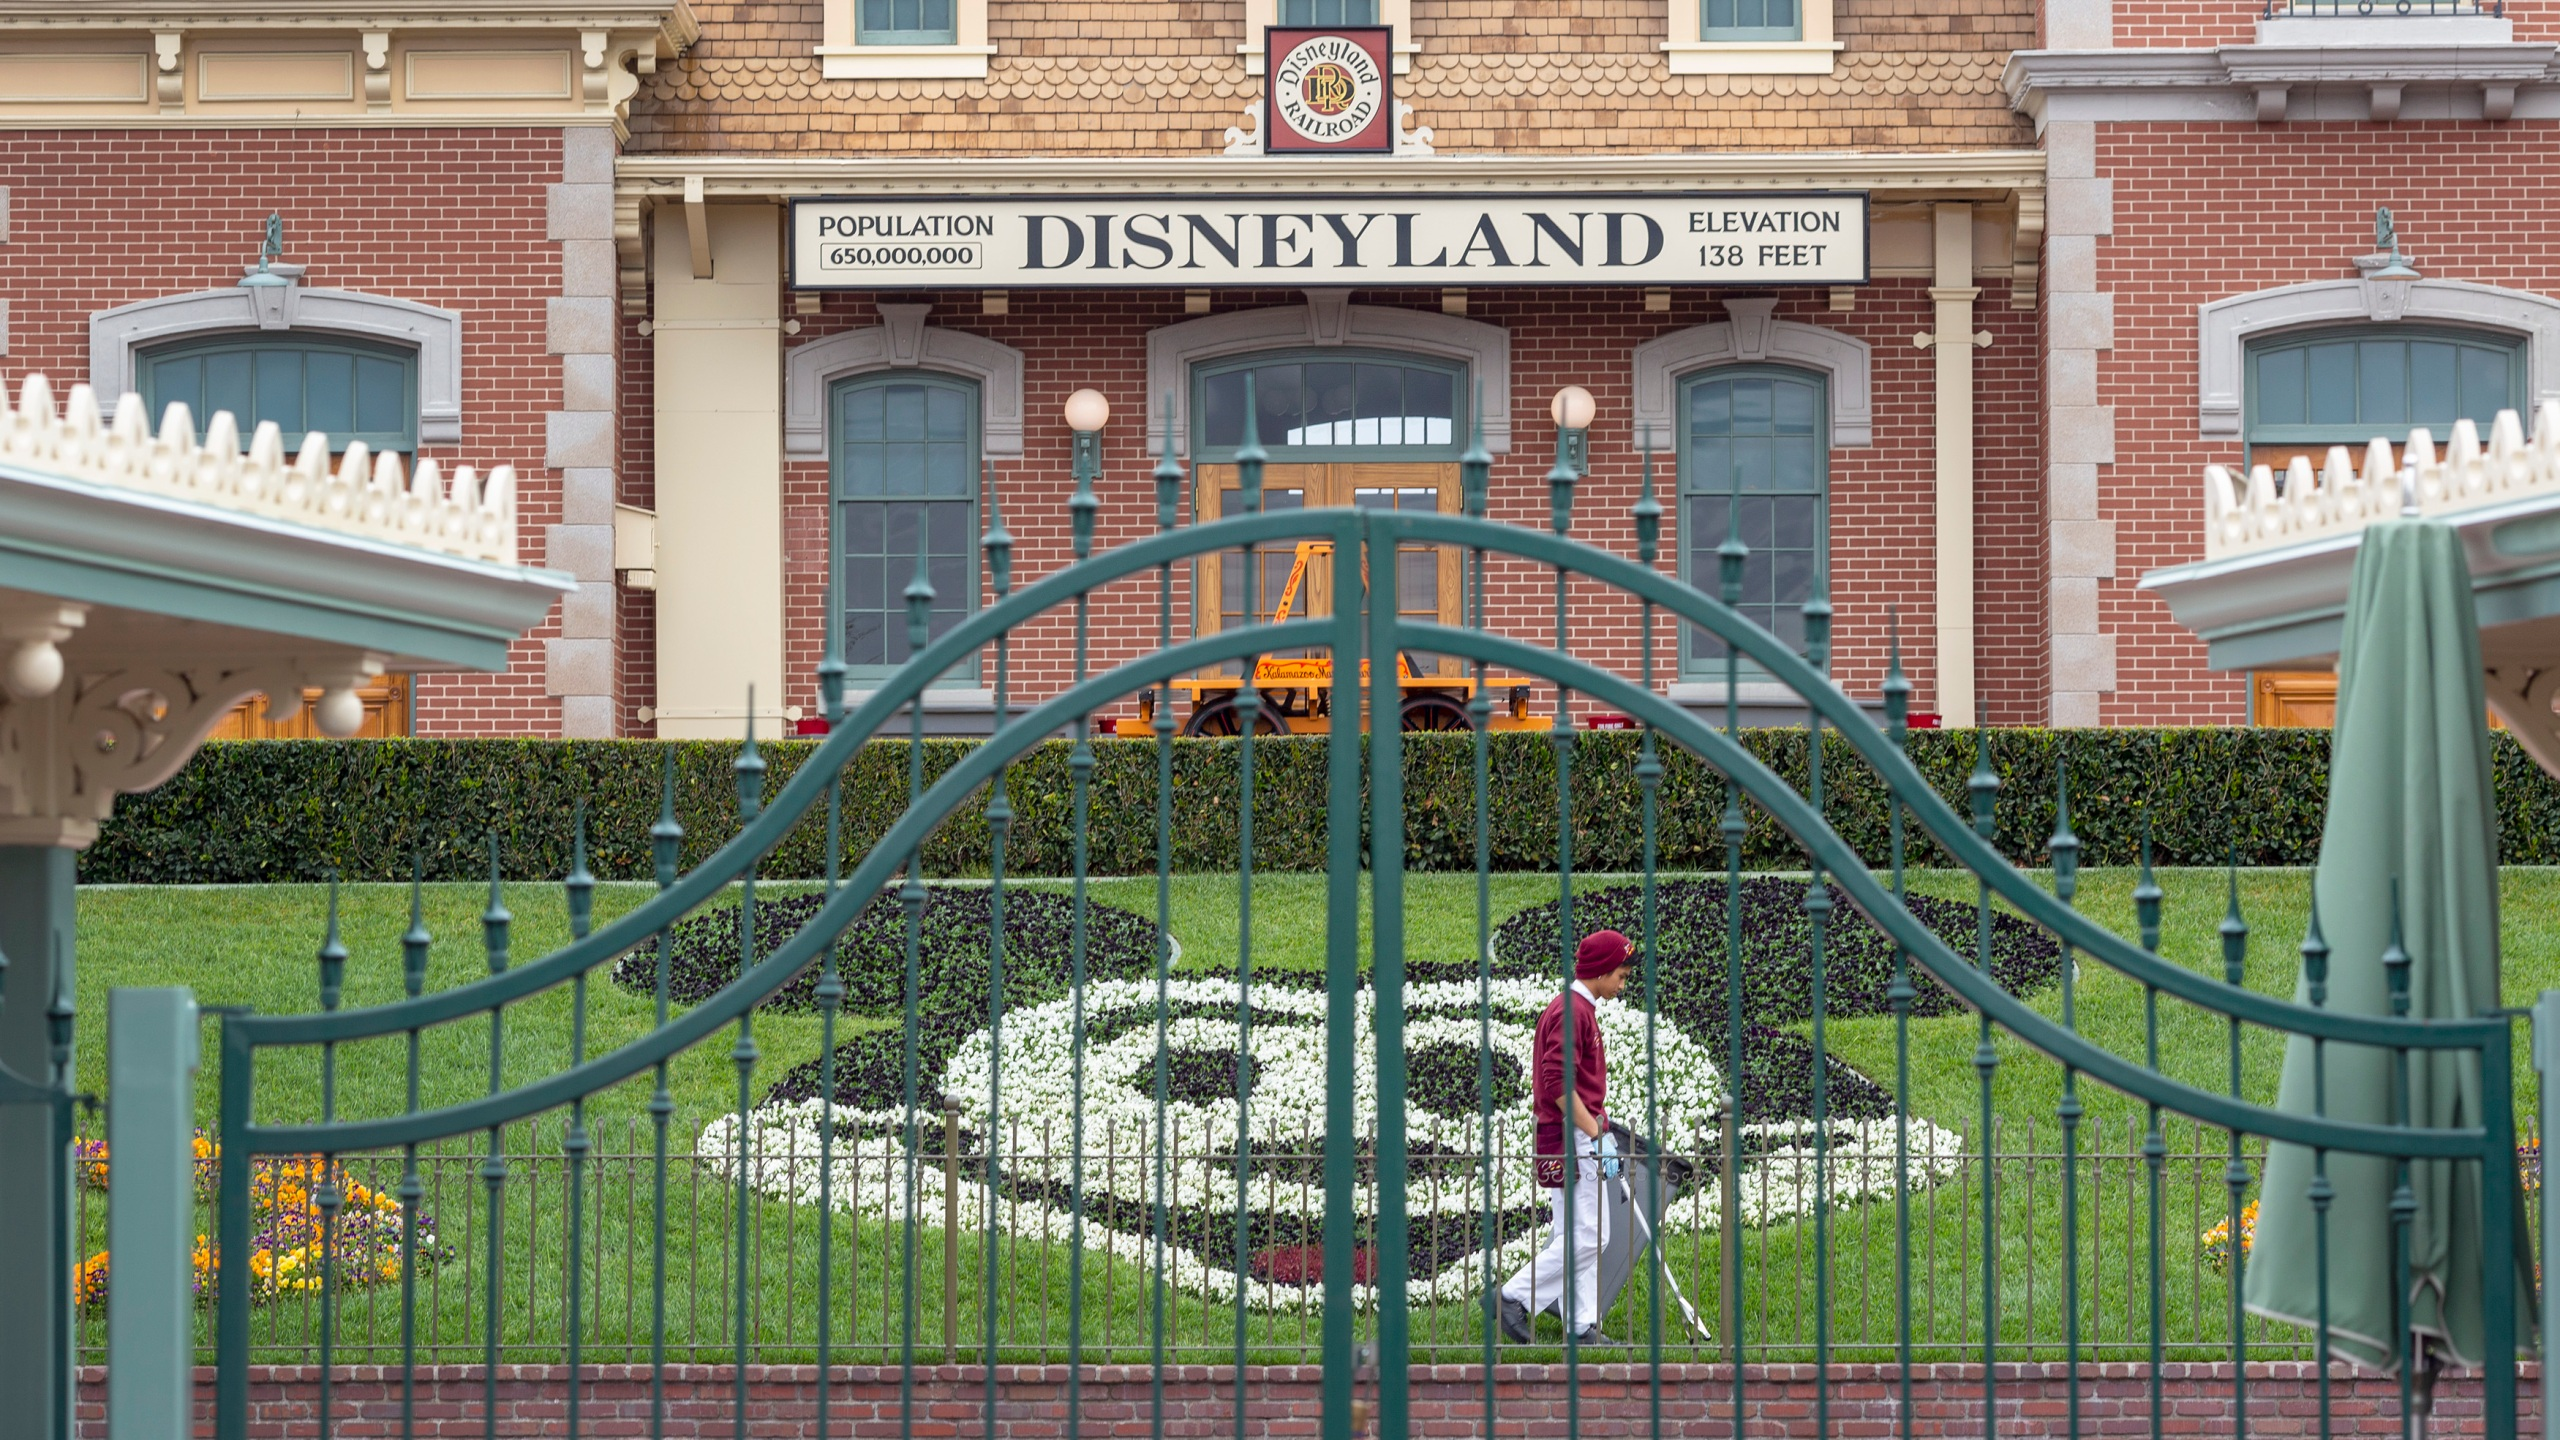 An employee cleans the grounds behind the closed gates of Disneyland Park on the first day of the closure of Disneyland and Disney California Adventure theme parks as fear of the spread of coronavirus continue, in Anaheim, California, on March 14, 2020. (DAVID MCNEW/AFP via Getty Images)